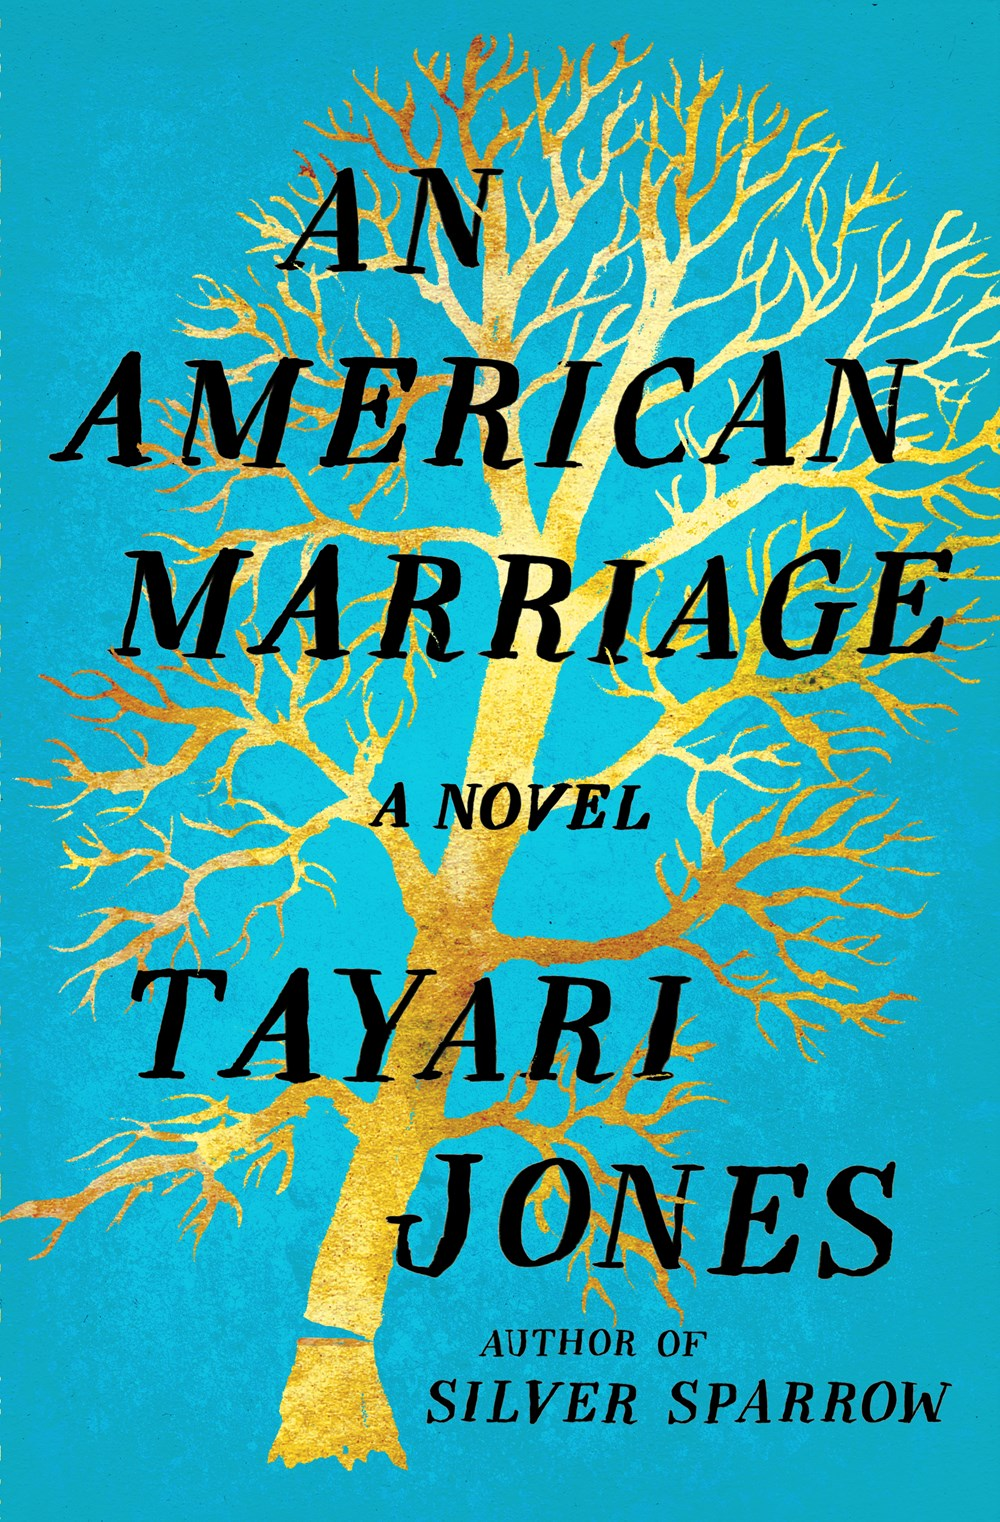 Dumbo Lit Book Club: An American Marriage by Tayari Jones